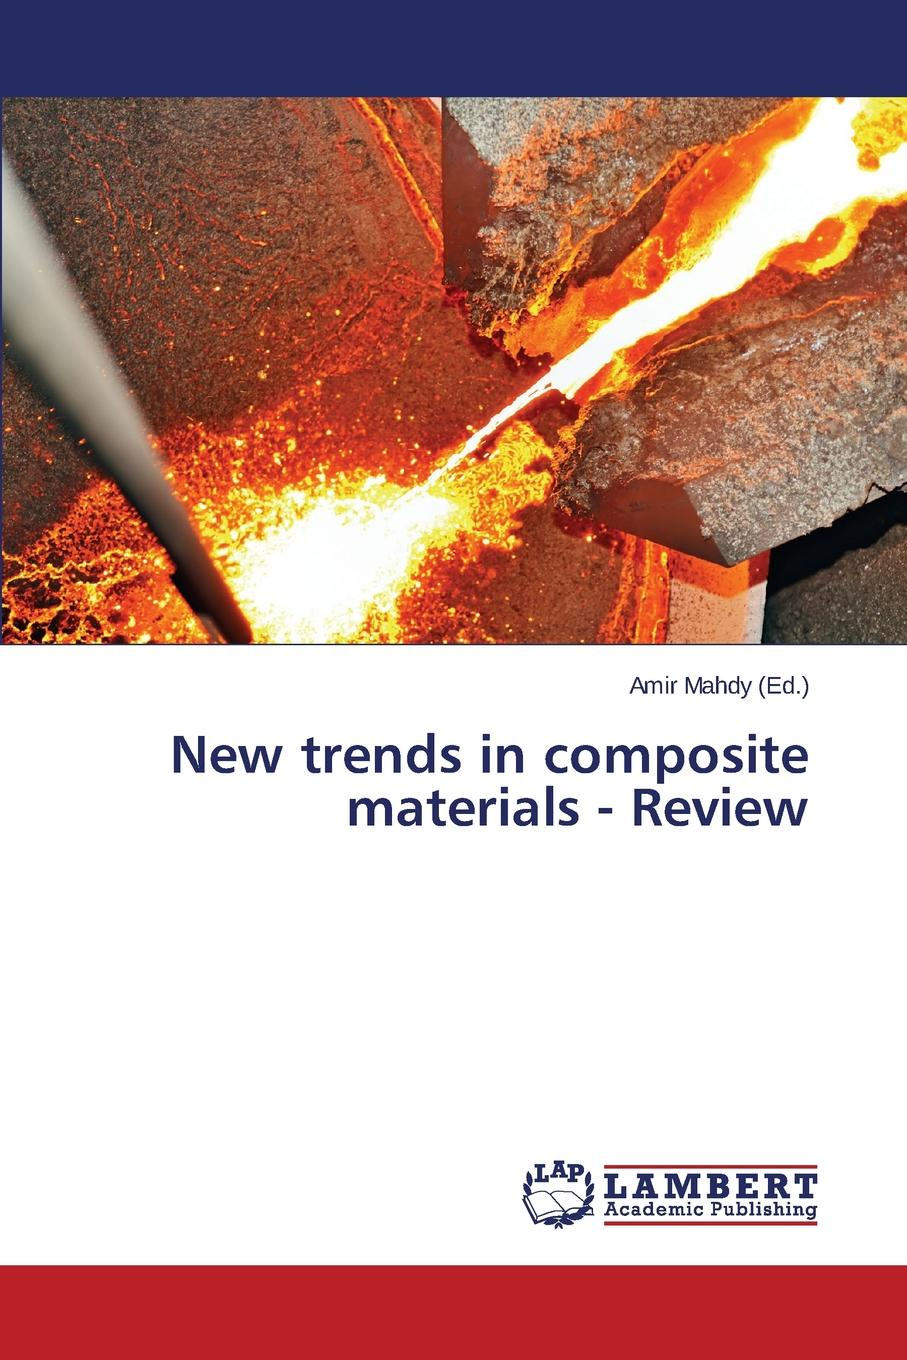 New trends in composite materials - Review nicolas boyard heat transfer in polymer composite materials forming processes